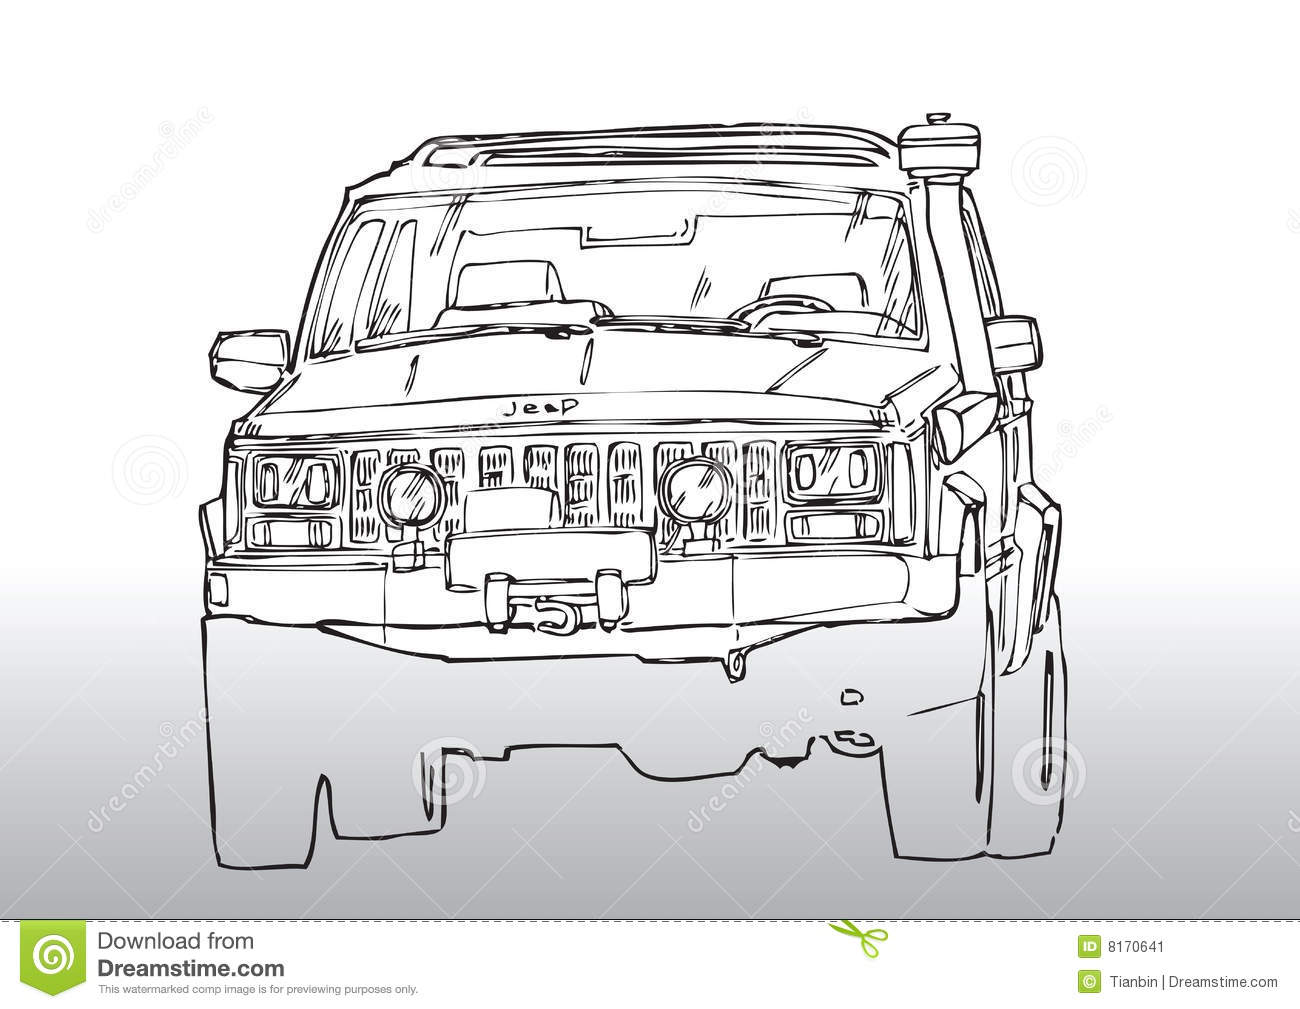 Car Drawing Truck Stock Vector Illustration Of Modifieds 8170641